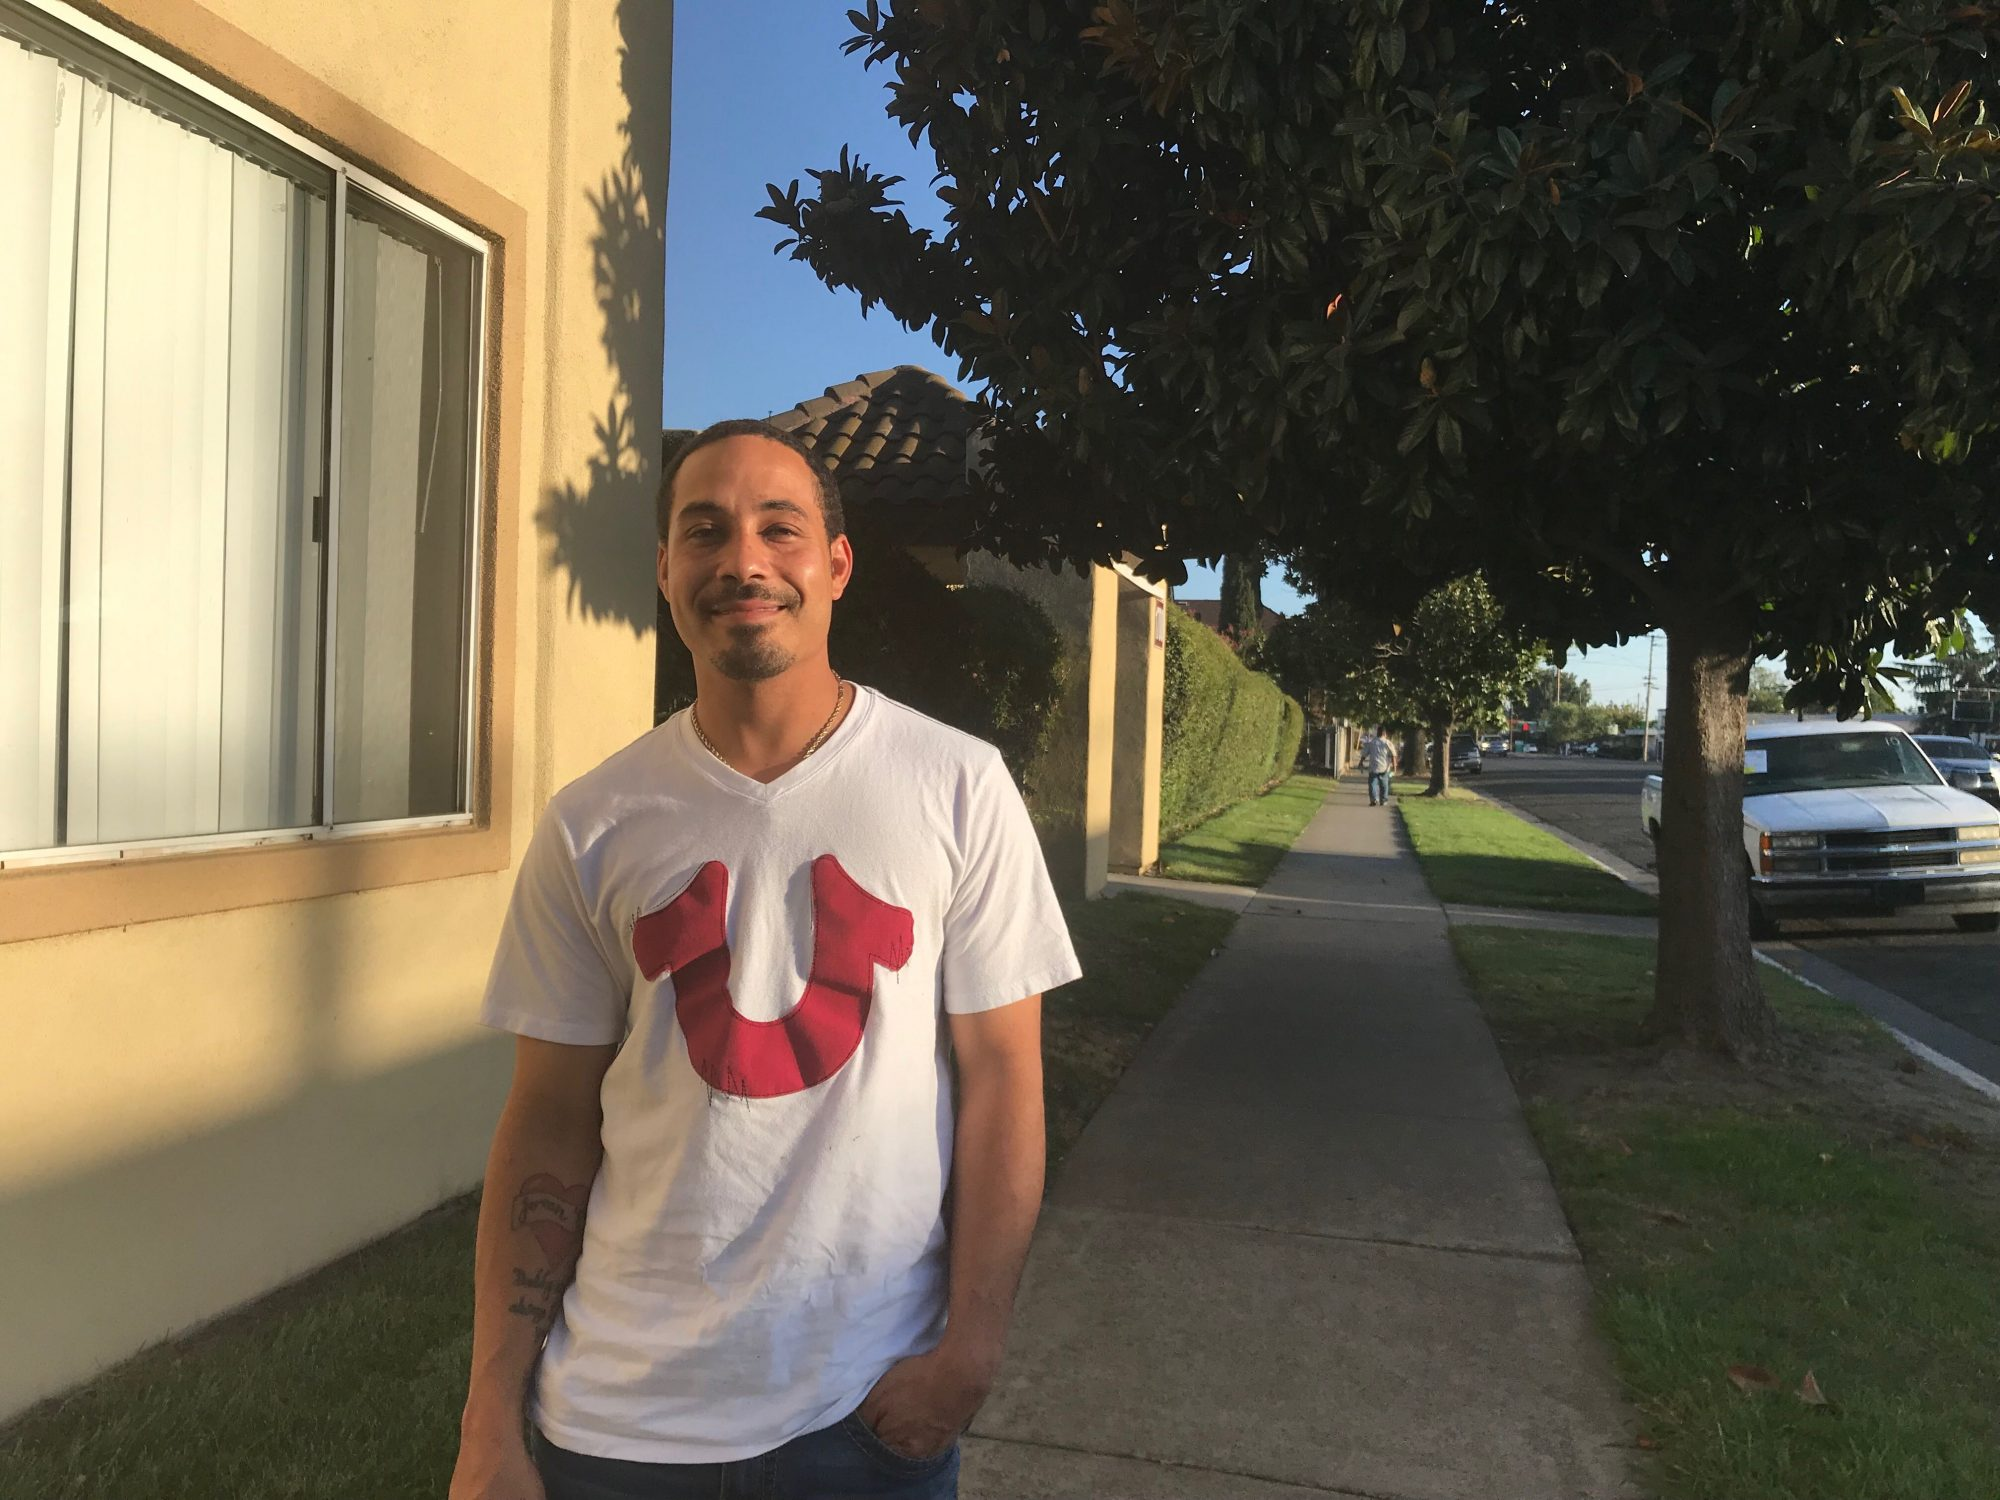 Jovan Bravo, 31, at the Stockton Economic Empowerment Demonstration headquarters. He's one of 125 residents receiving $500 a month from the pilot project.